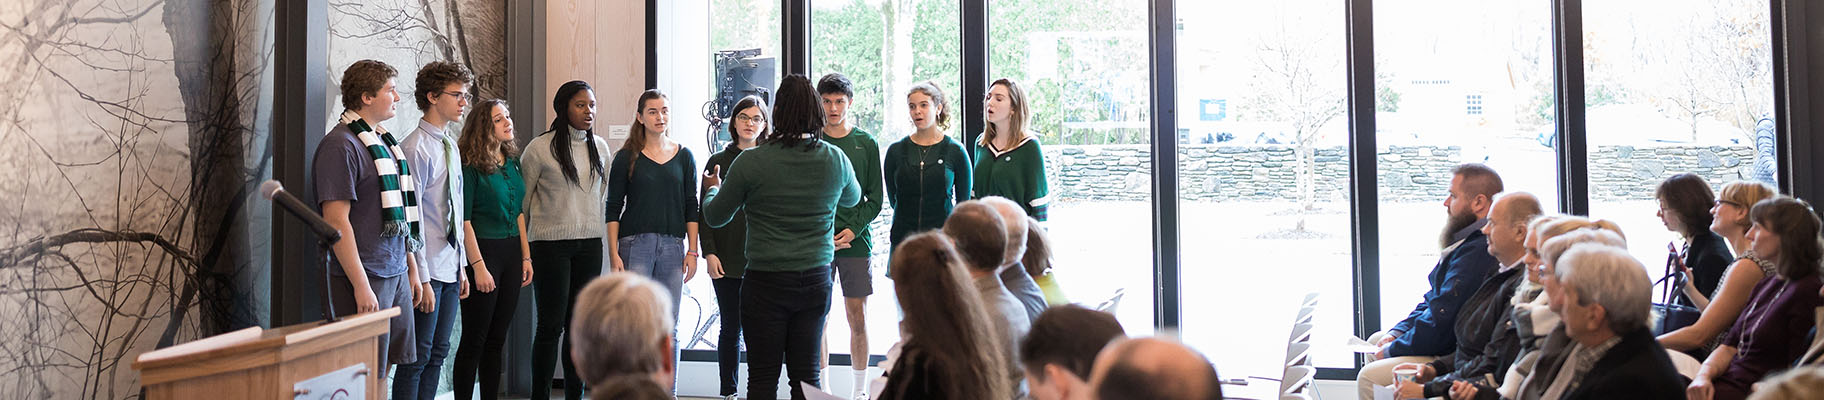 CA Singers Herald History at the Opening of the Concord Museum's Rasmussen Education Center